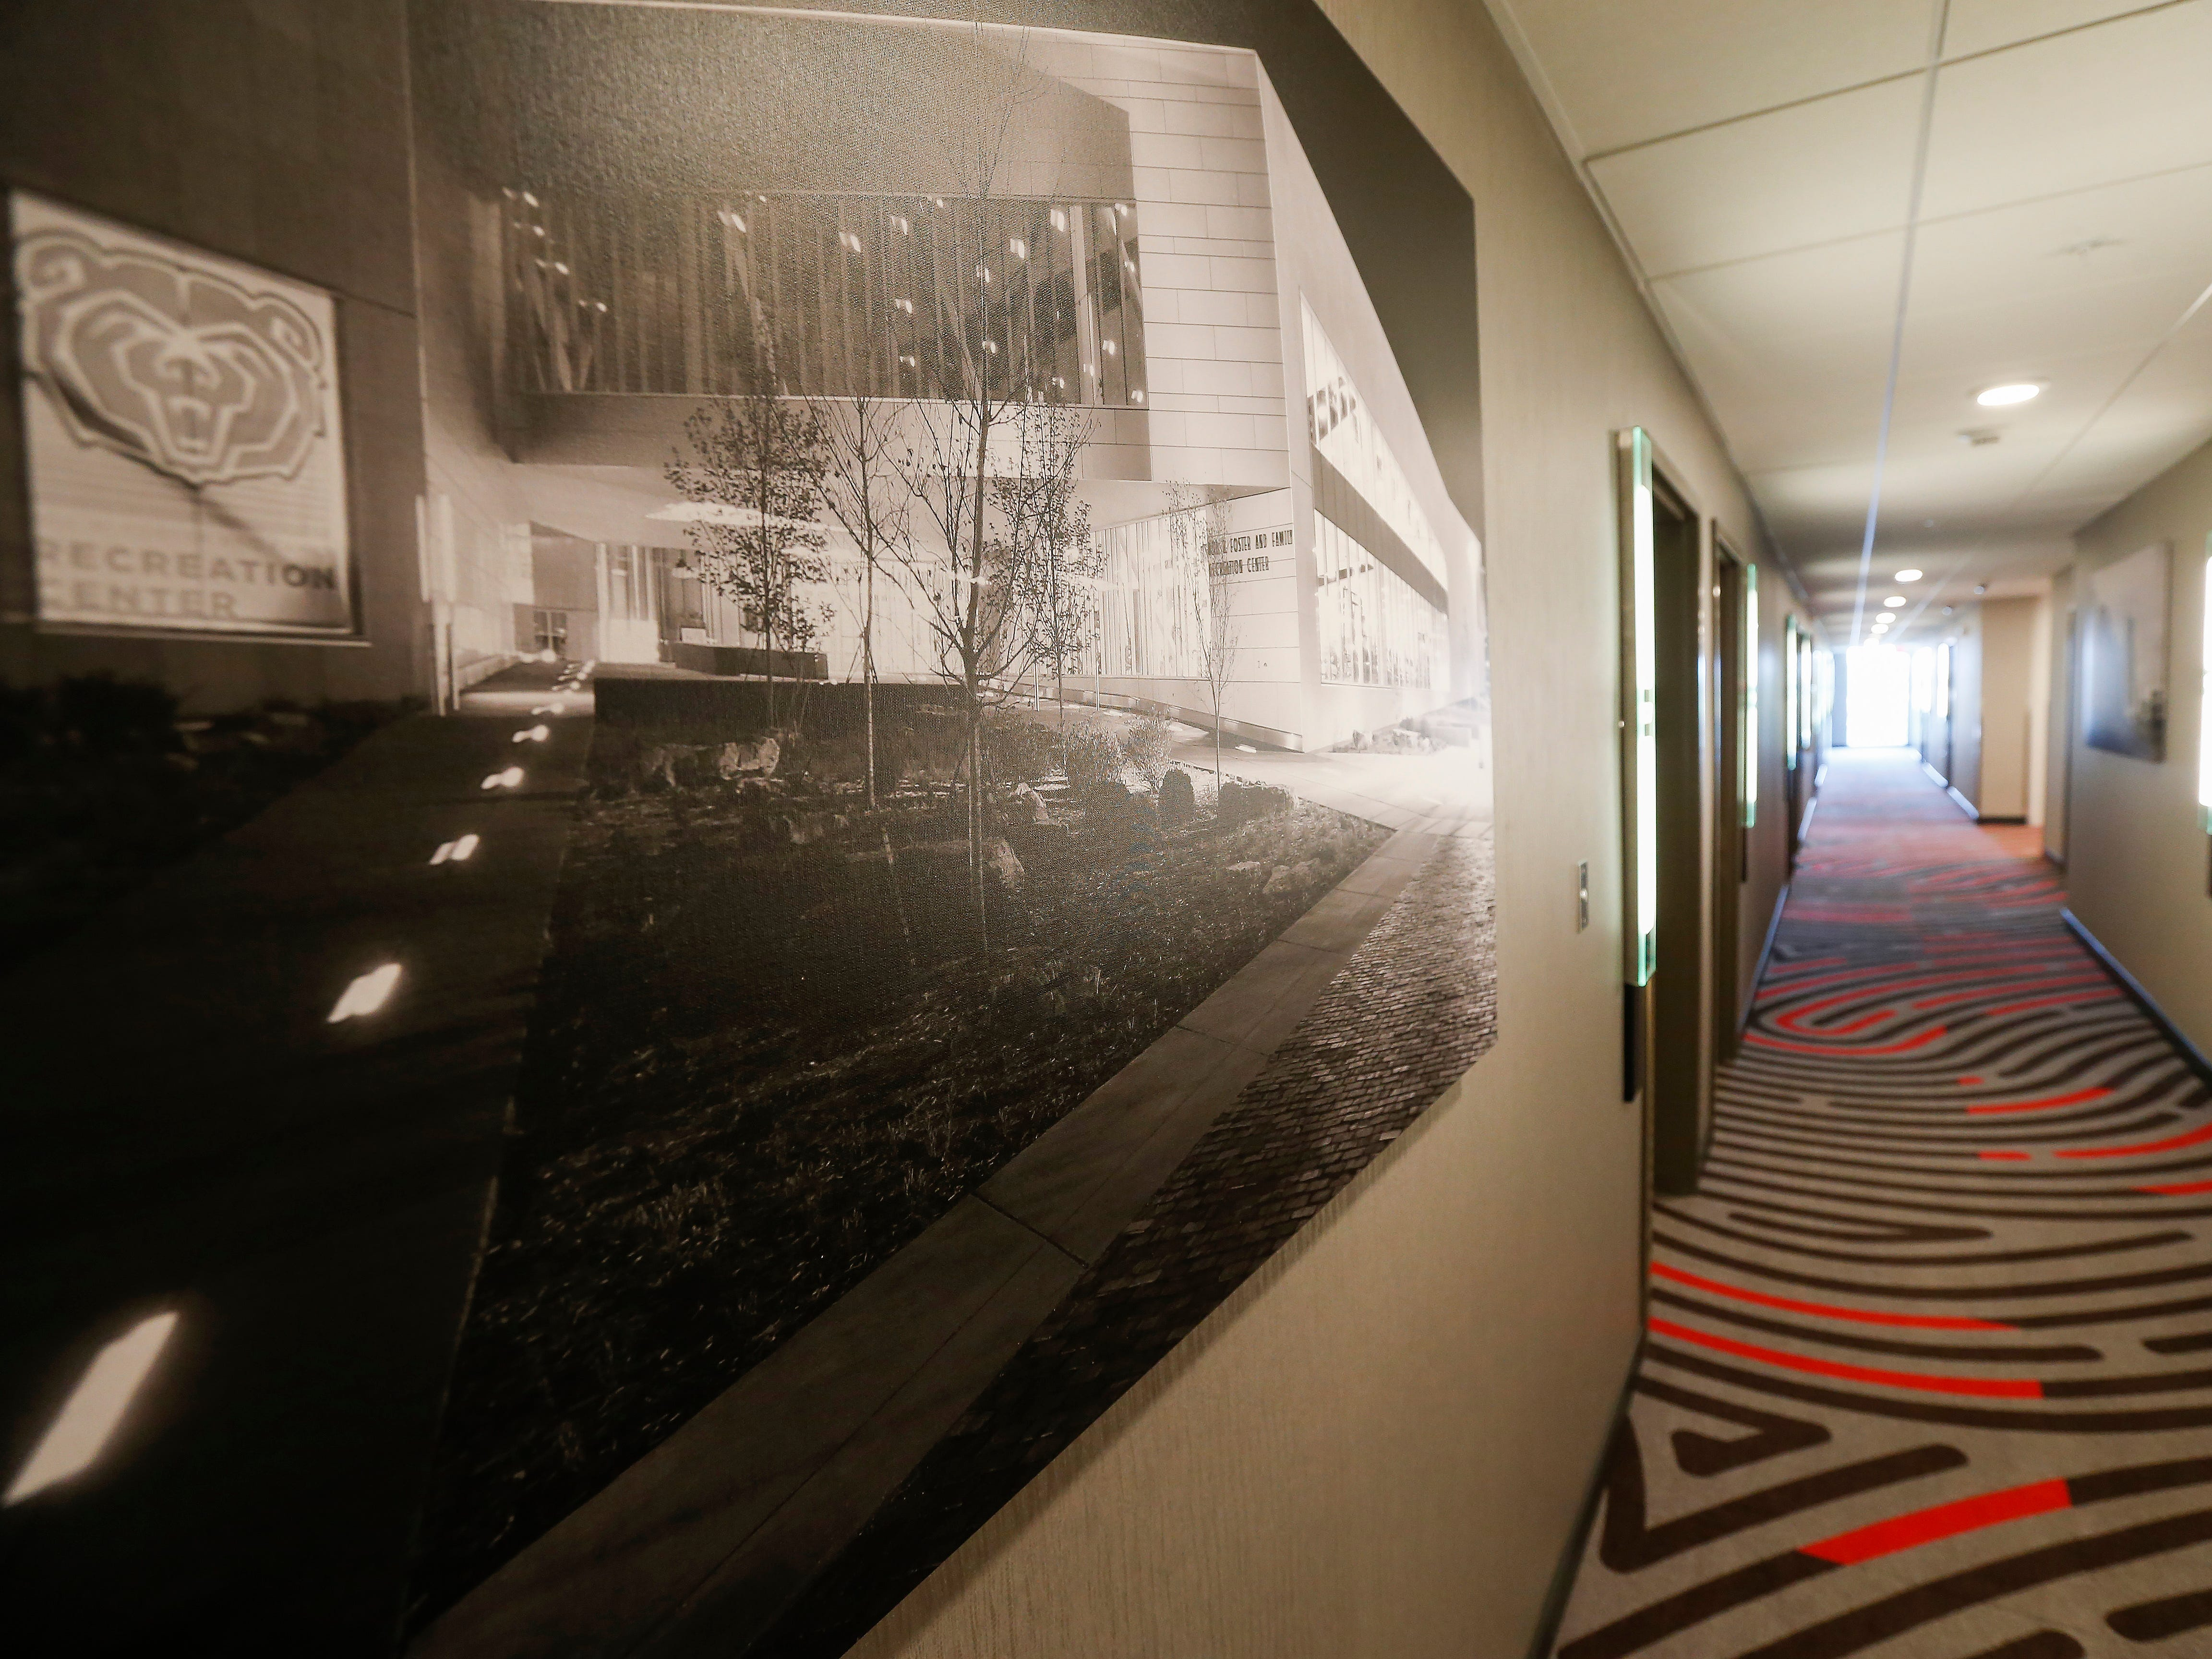 Photographs of local landmarks decorate the hallway walls at the new Vib Hotel, located at 1845 E Sunshine St. The hotel will hold its grand opening on Friday, Aug. 10, 2018.